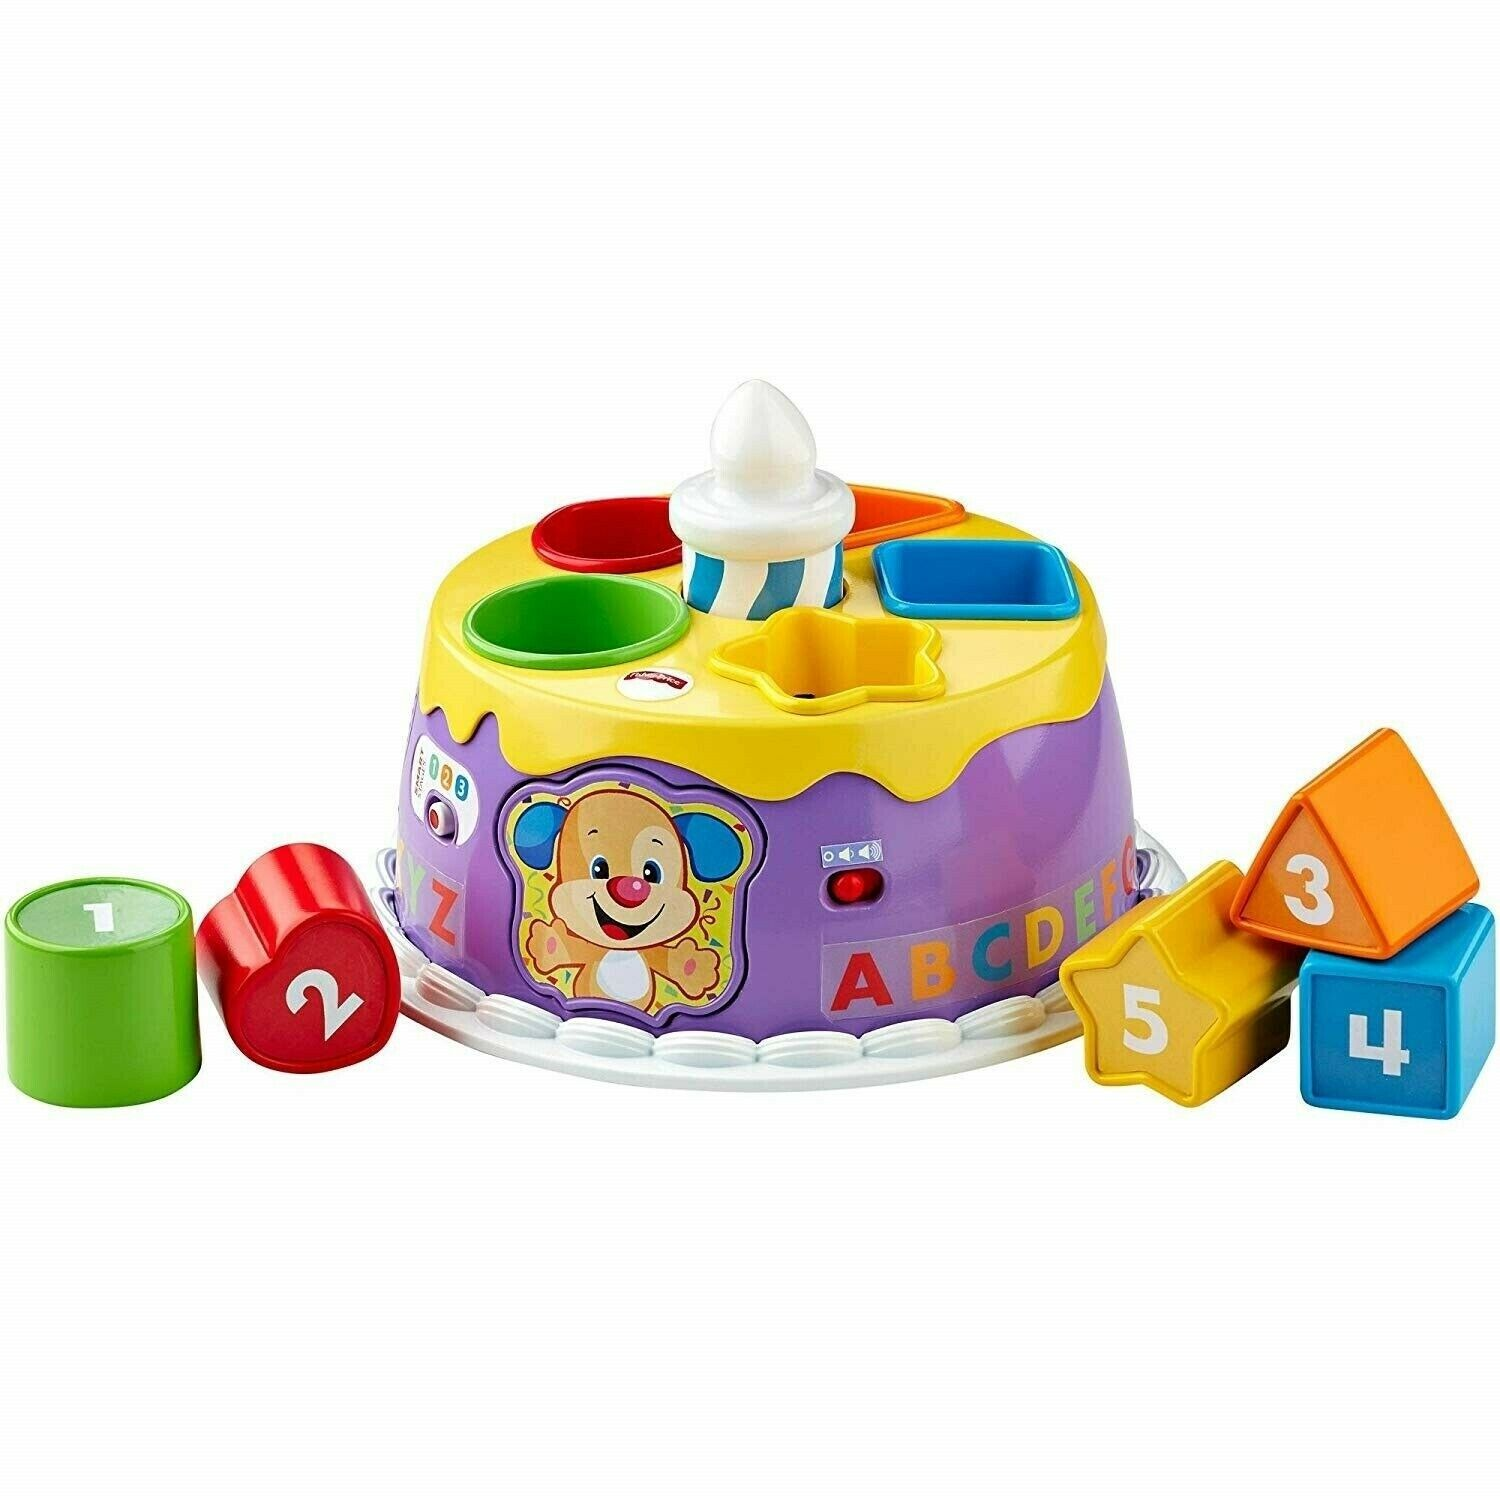 Fisher-Price Musical Lights Birthday Cake Laugh and Learn Smart Stages Toy image 3